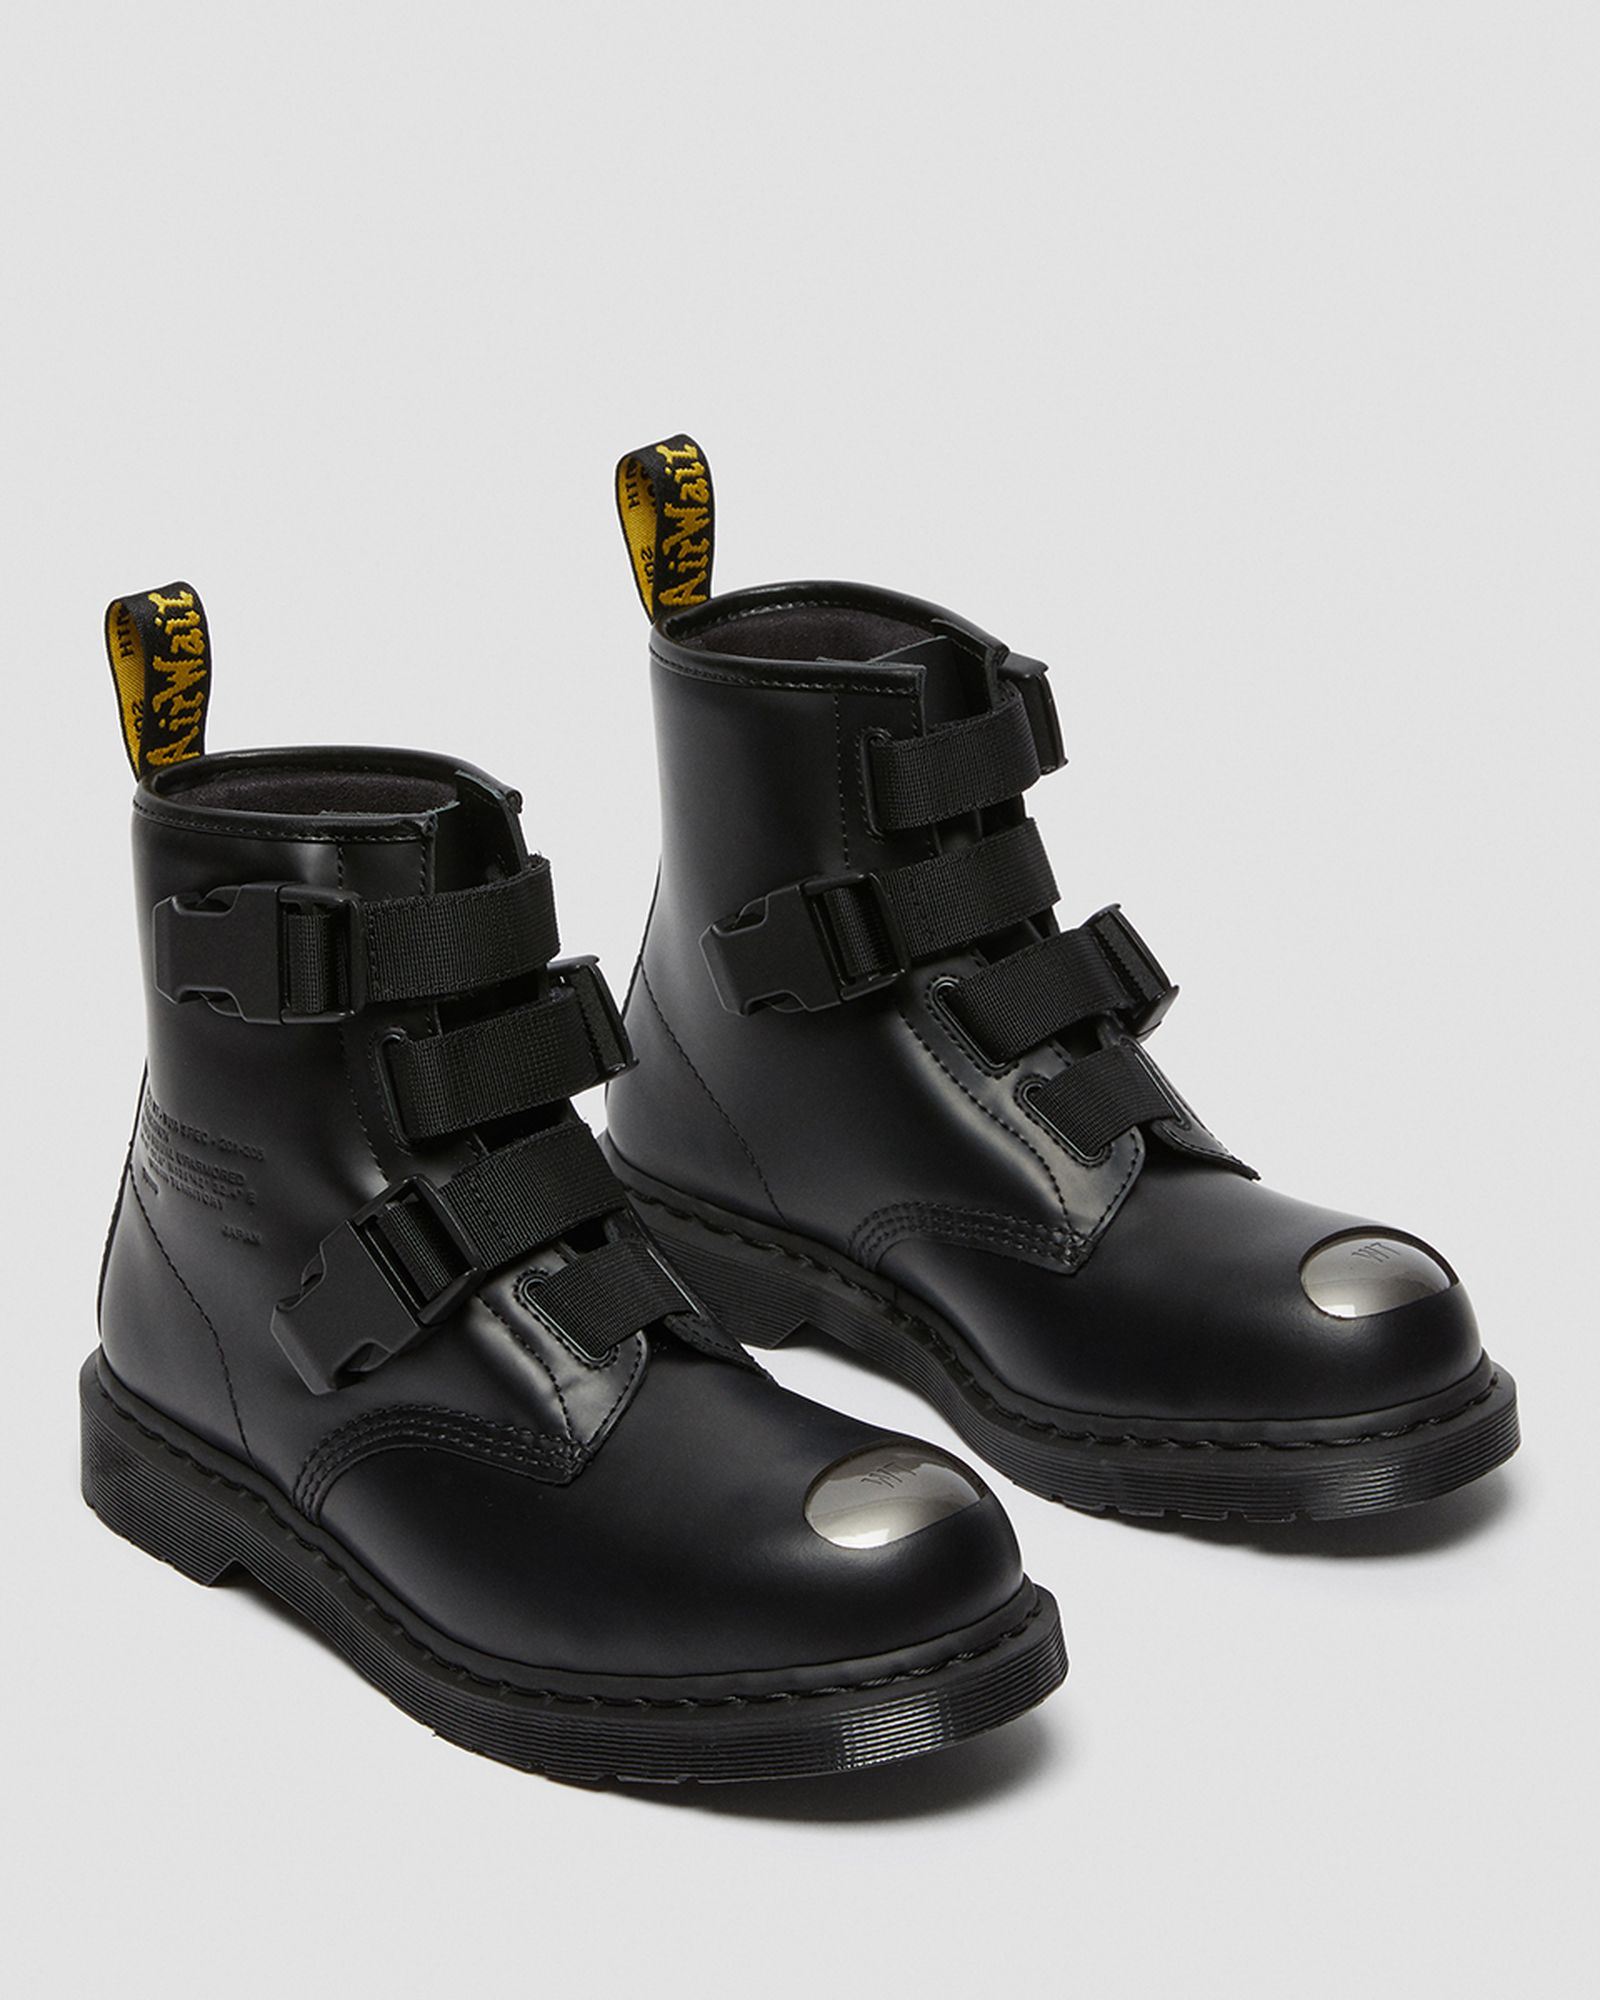 wtaps-dr-martens-1460-remastered-release-date-price-1-02